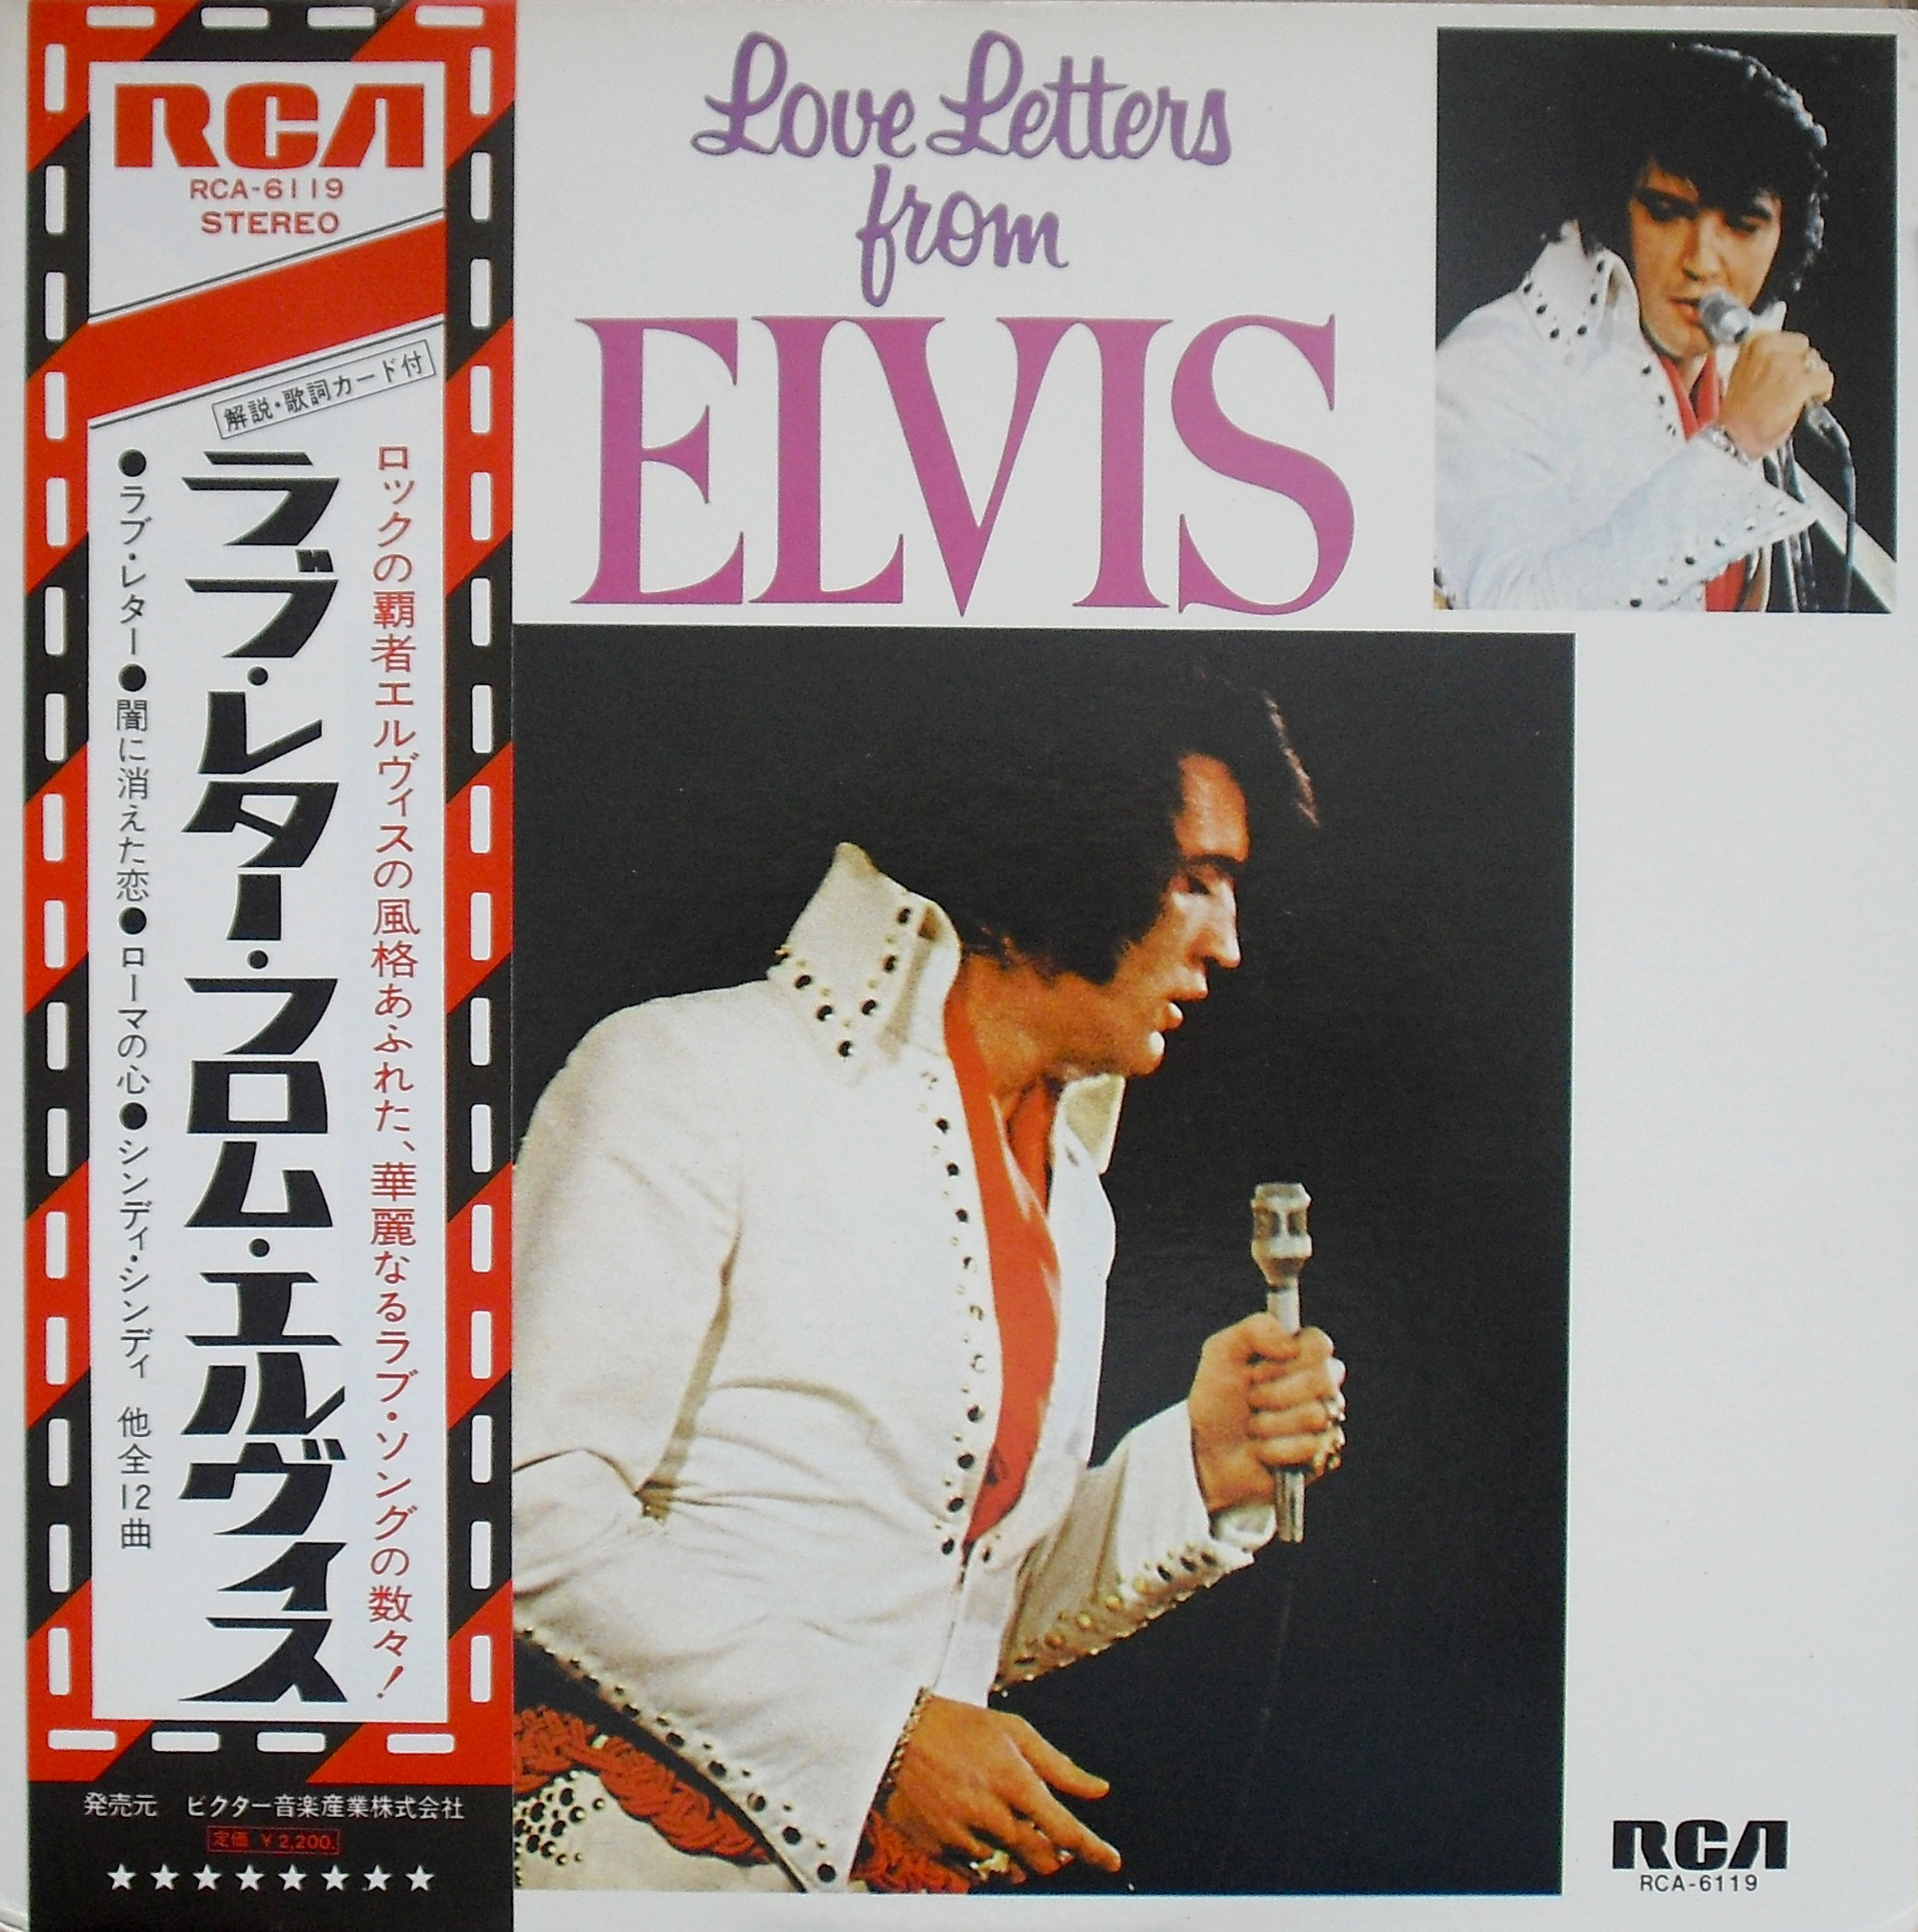 LOVE LETTERS FROM ELVIS 01ygc5n